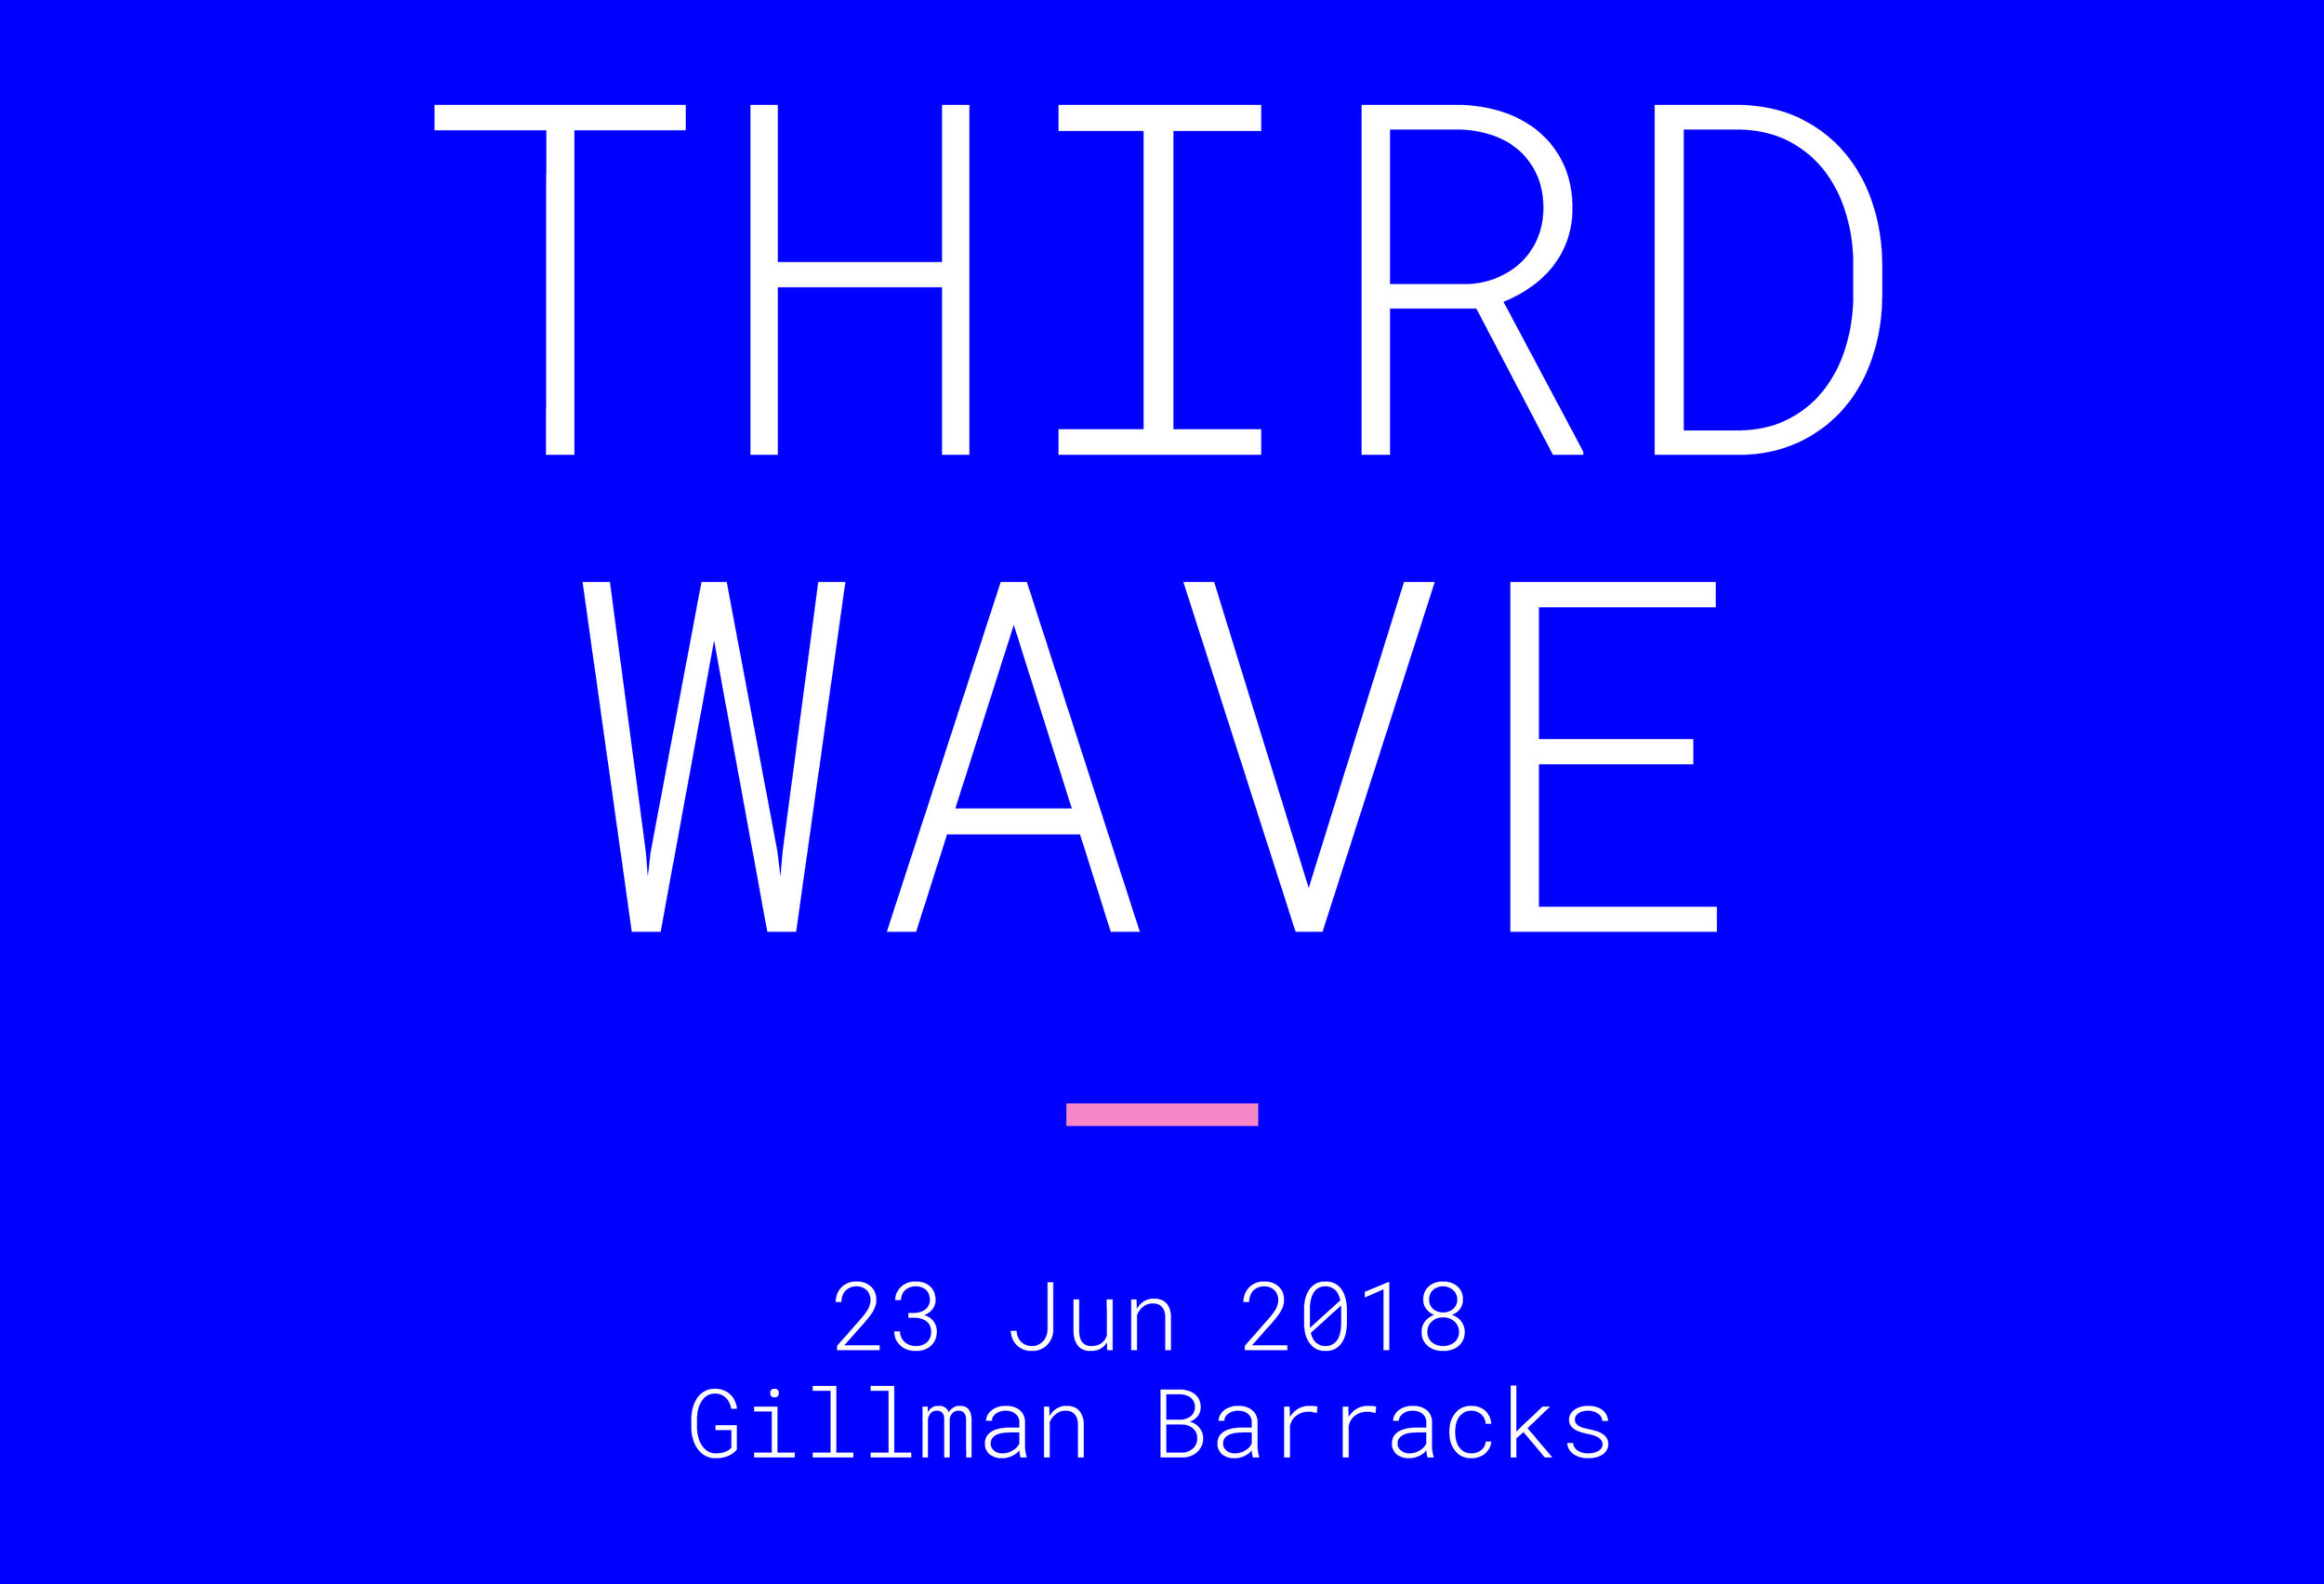 DISINI-Third Wave-Website-Happening Now.jpg